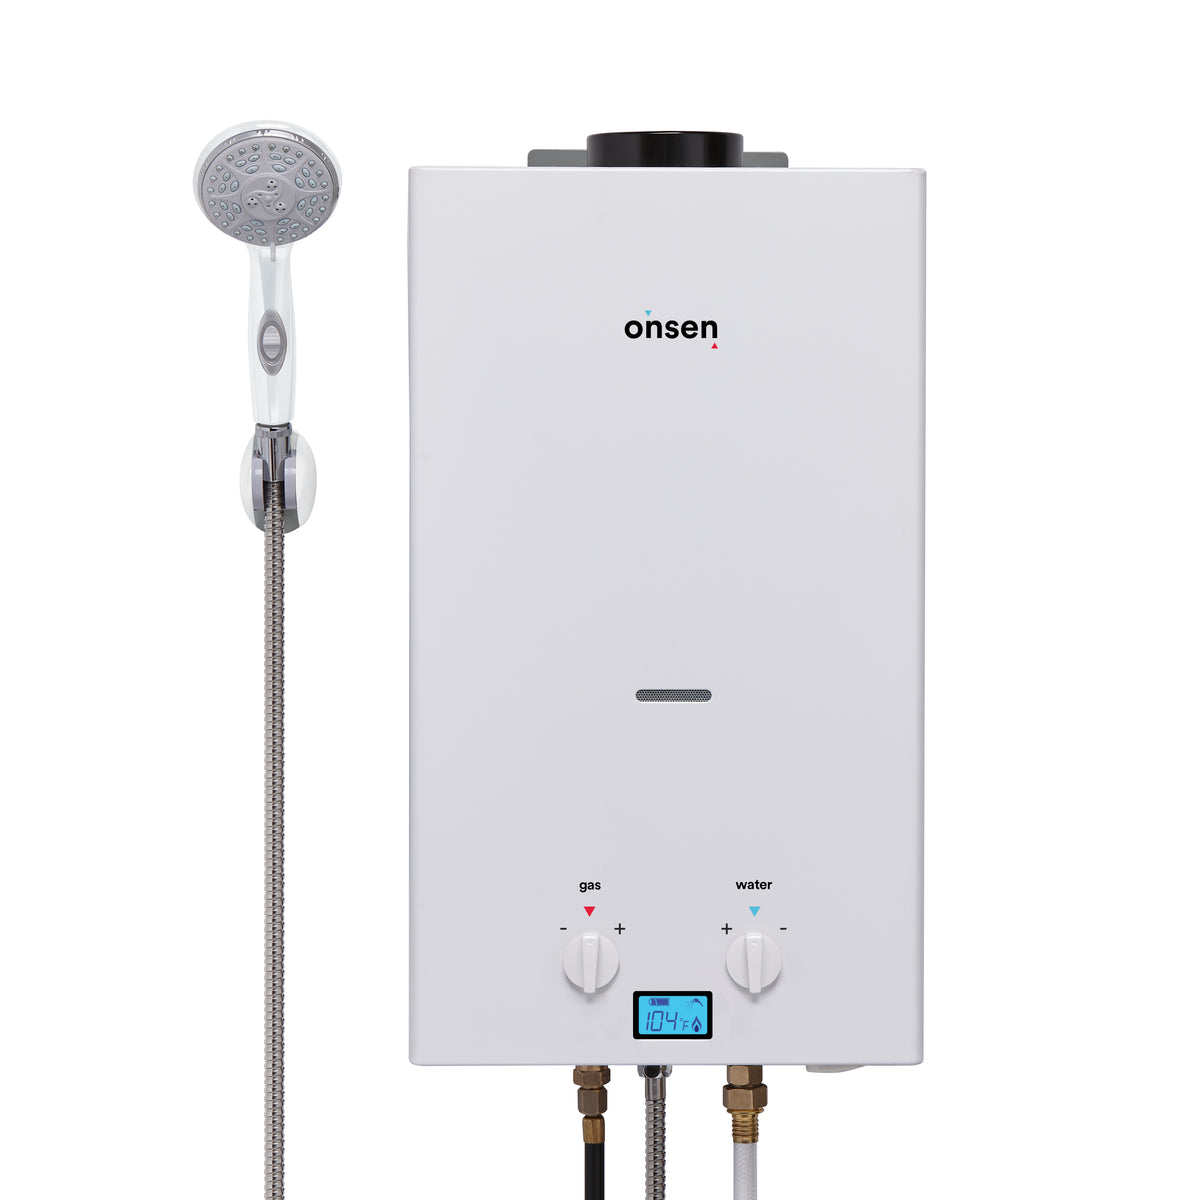 Onsen 10L Portable Tankless Water Heater w//Onsen 3.0 12V Water Pump